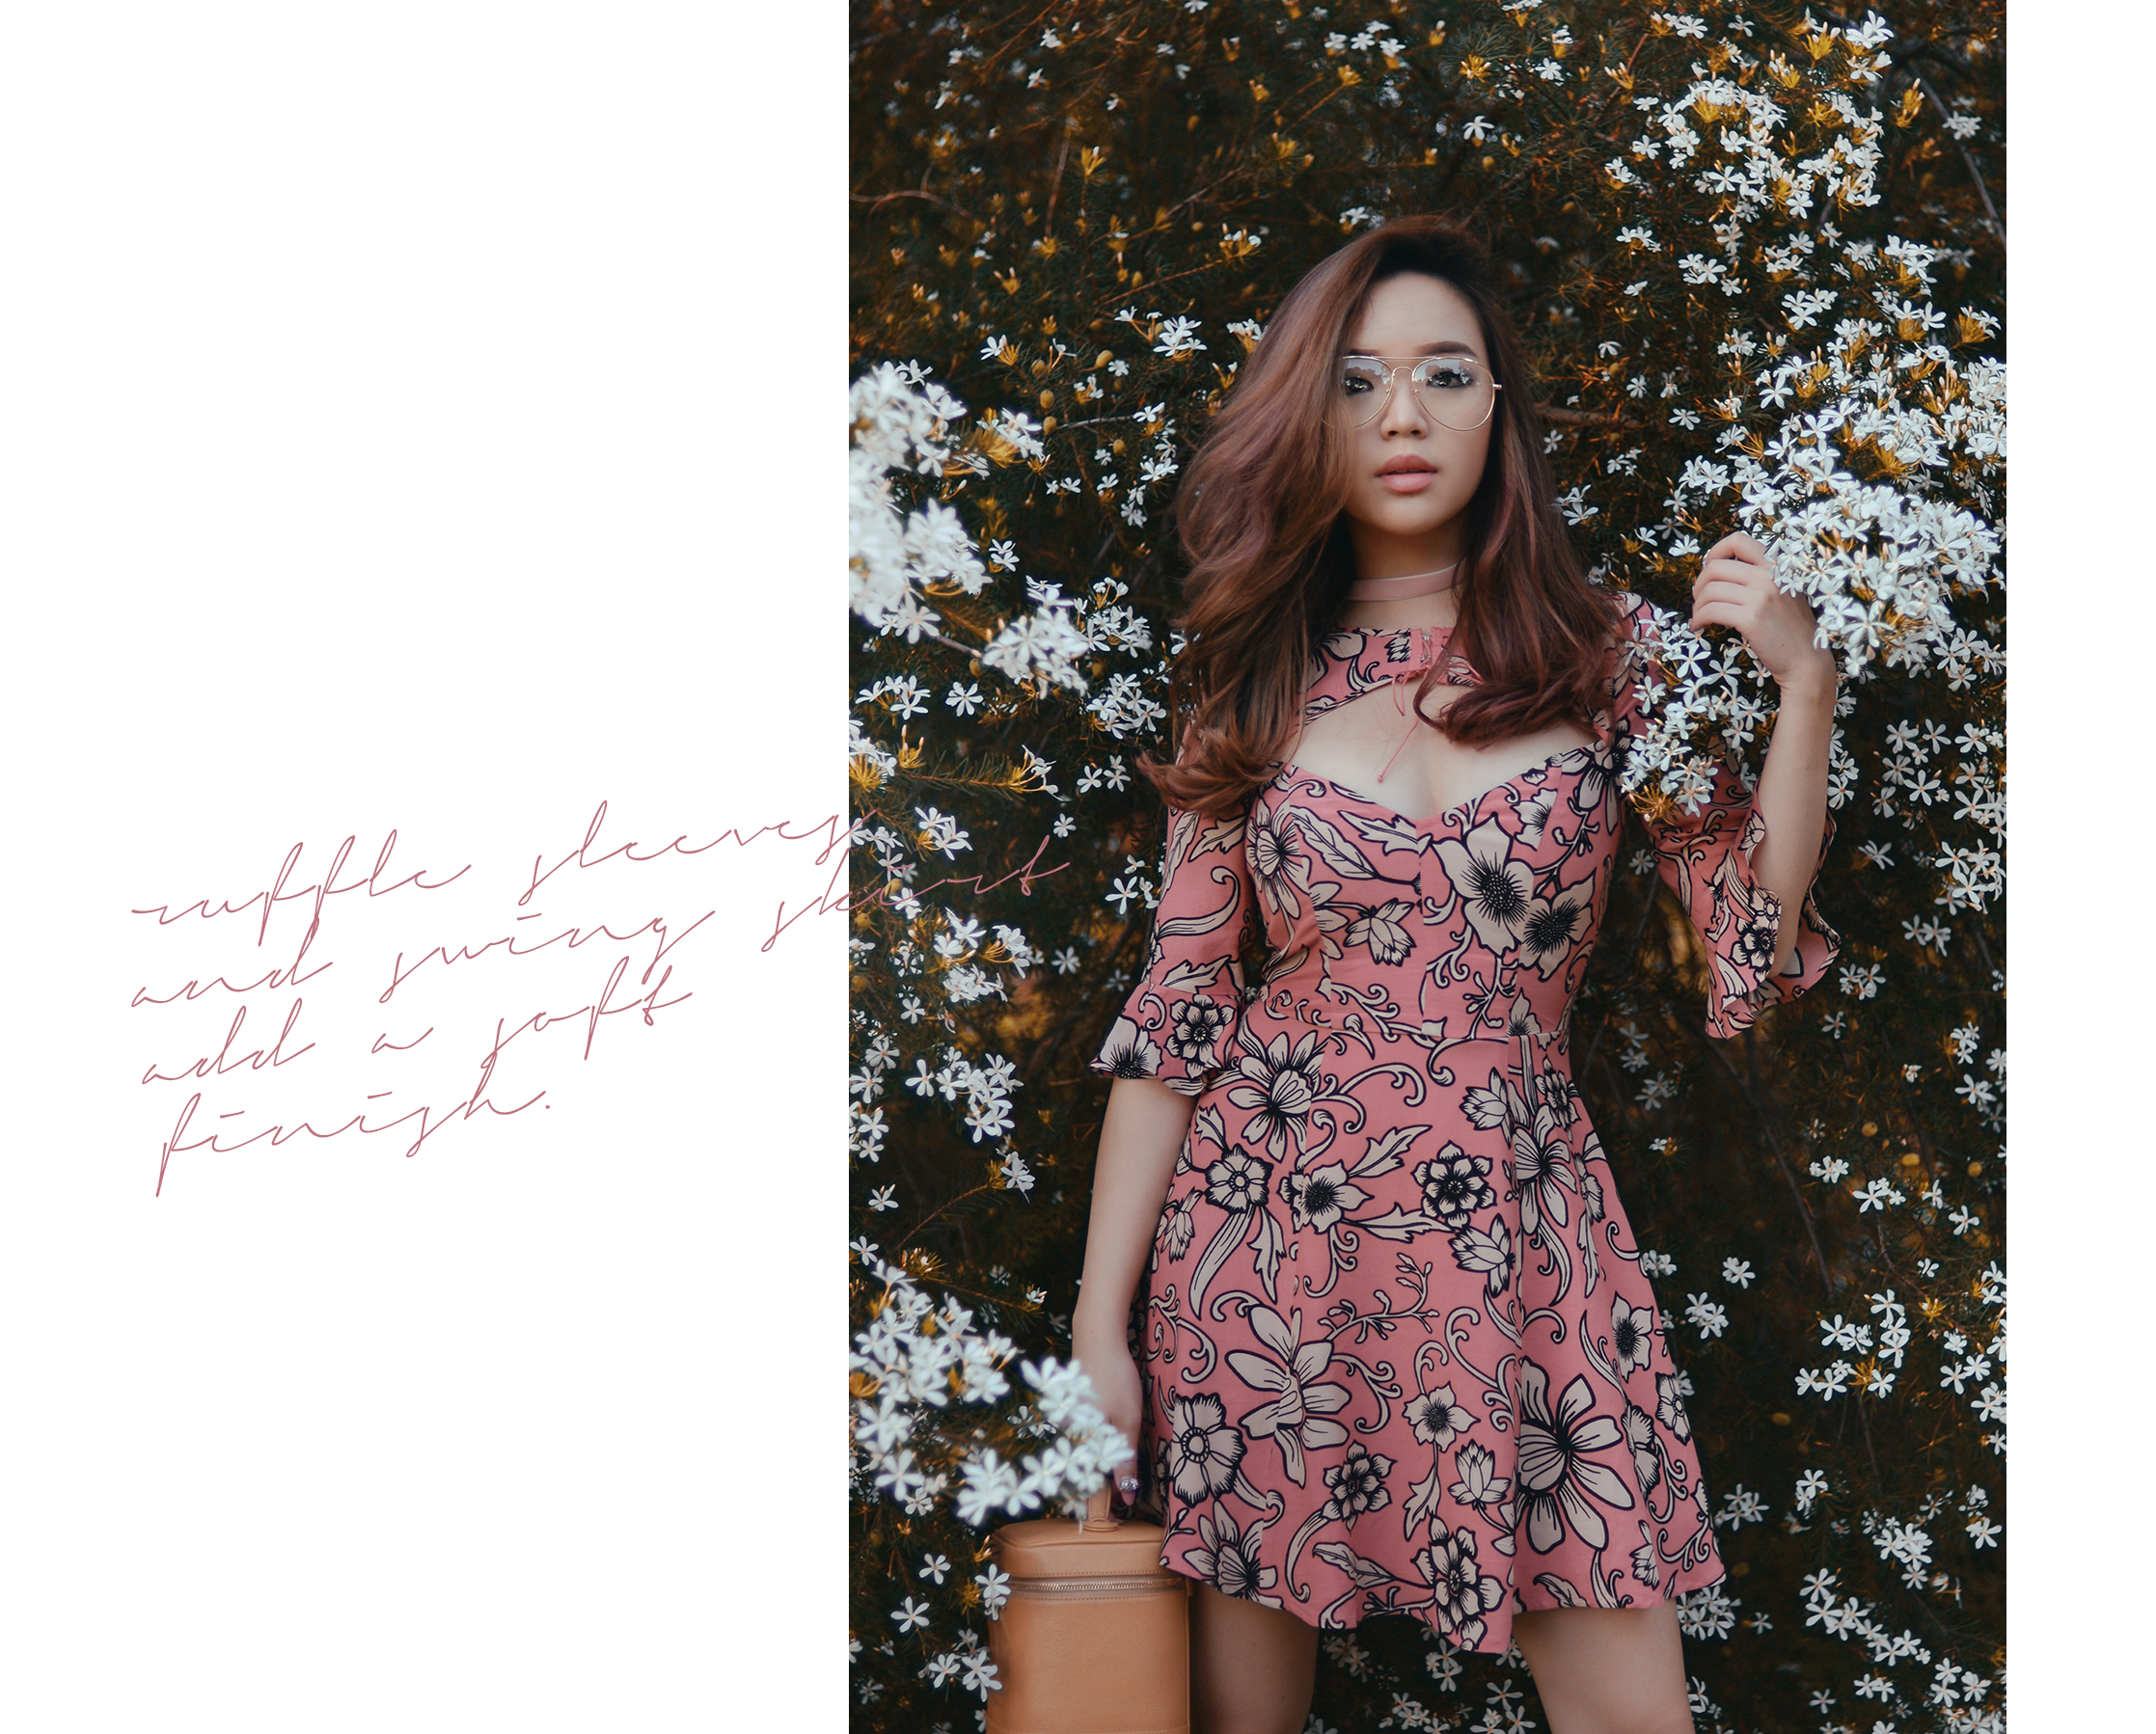 willabelle-ong-paledivision-street-style-fashion-travel-lifestyle-blog-australia-perth-singapore-shopbop-for-love-and-lemons-ayla-lace-up-dress-velvet-choker-pink-florals